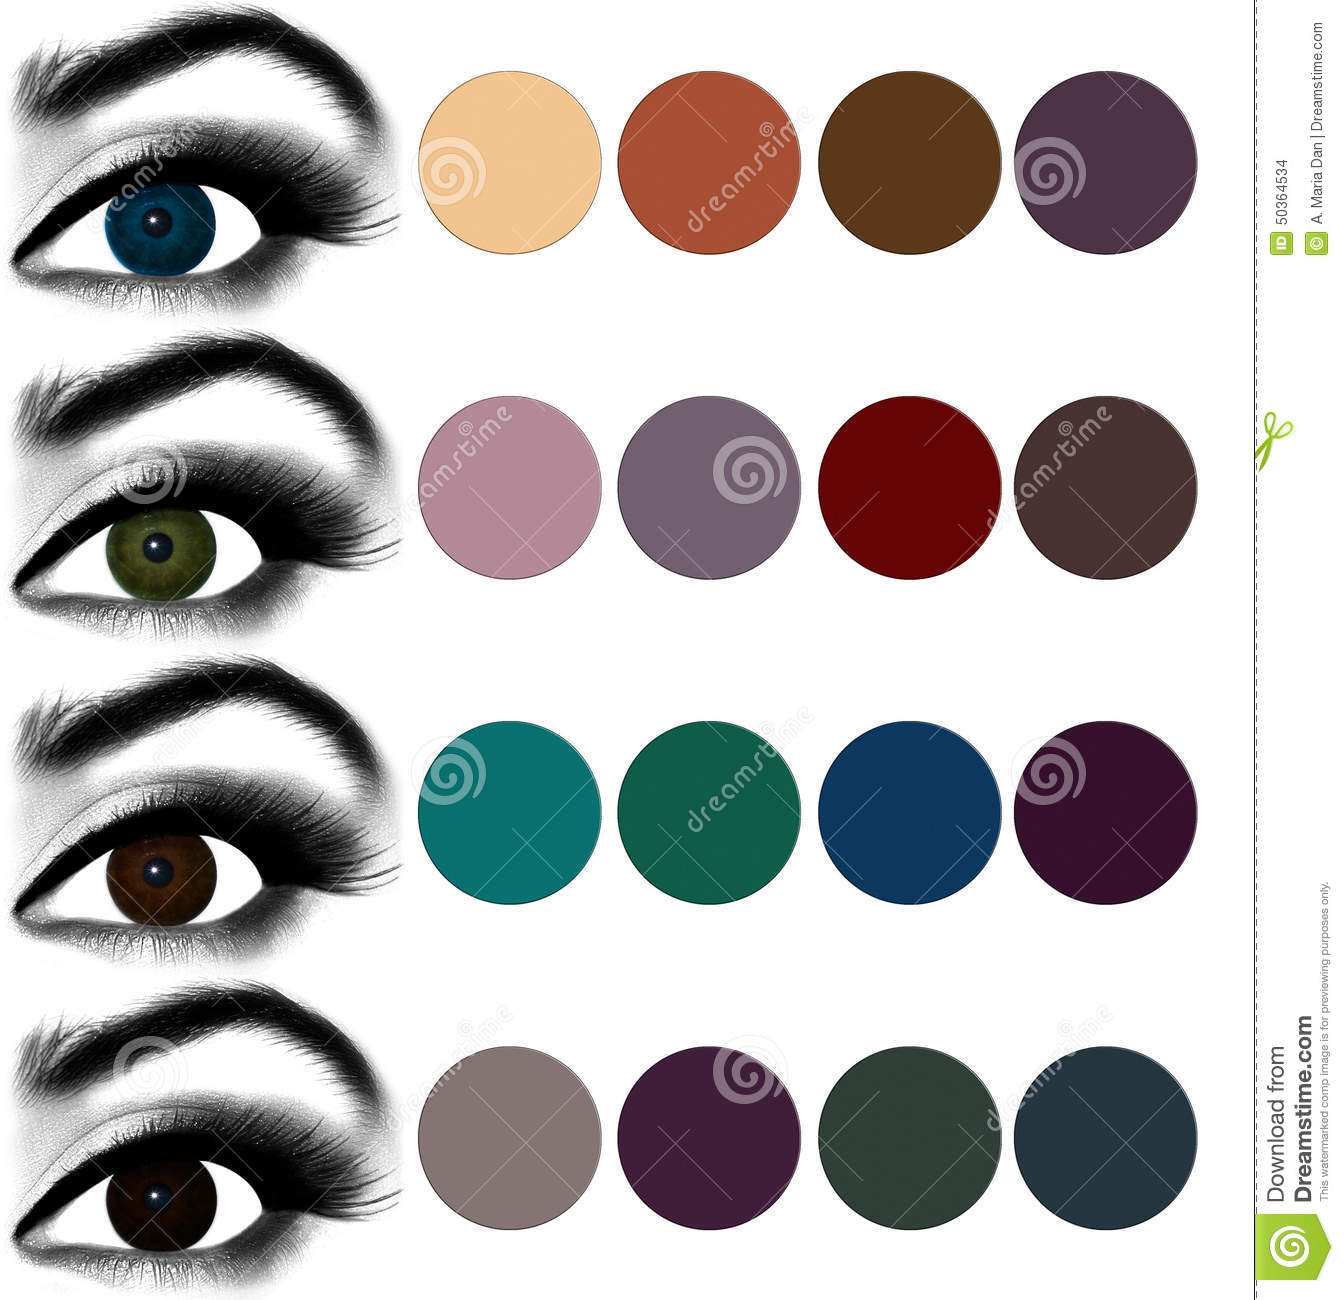 eyes makeup.matching eyeshadow to eye color. stock photo - image of